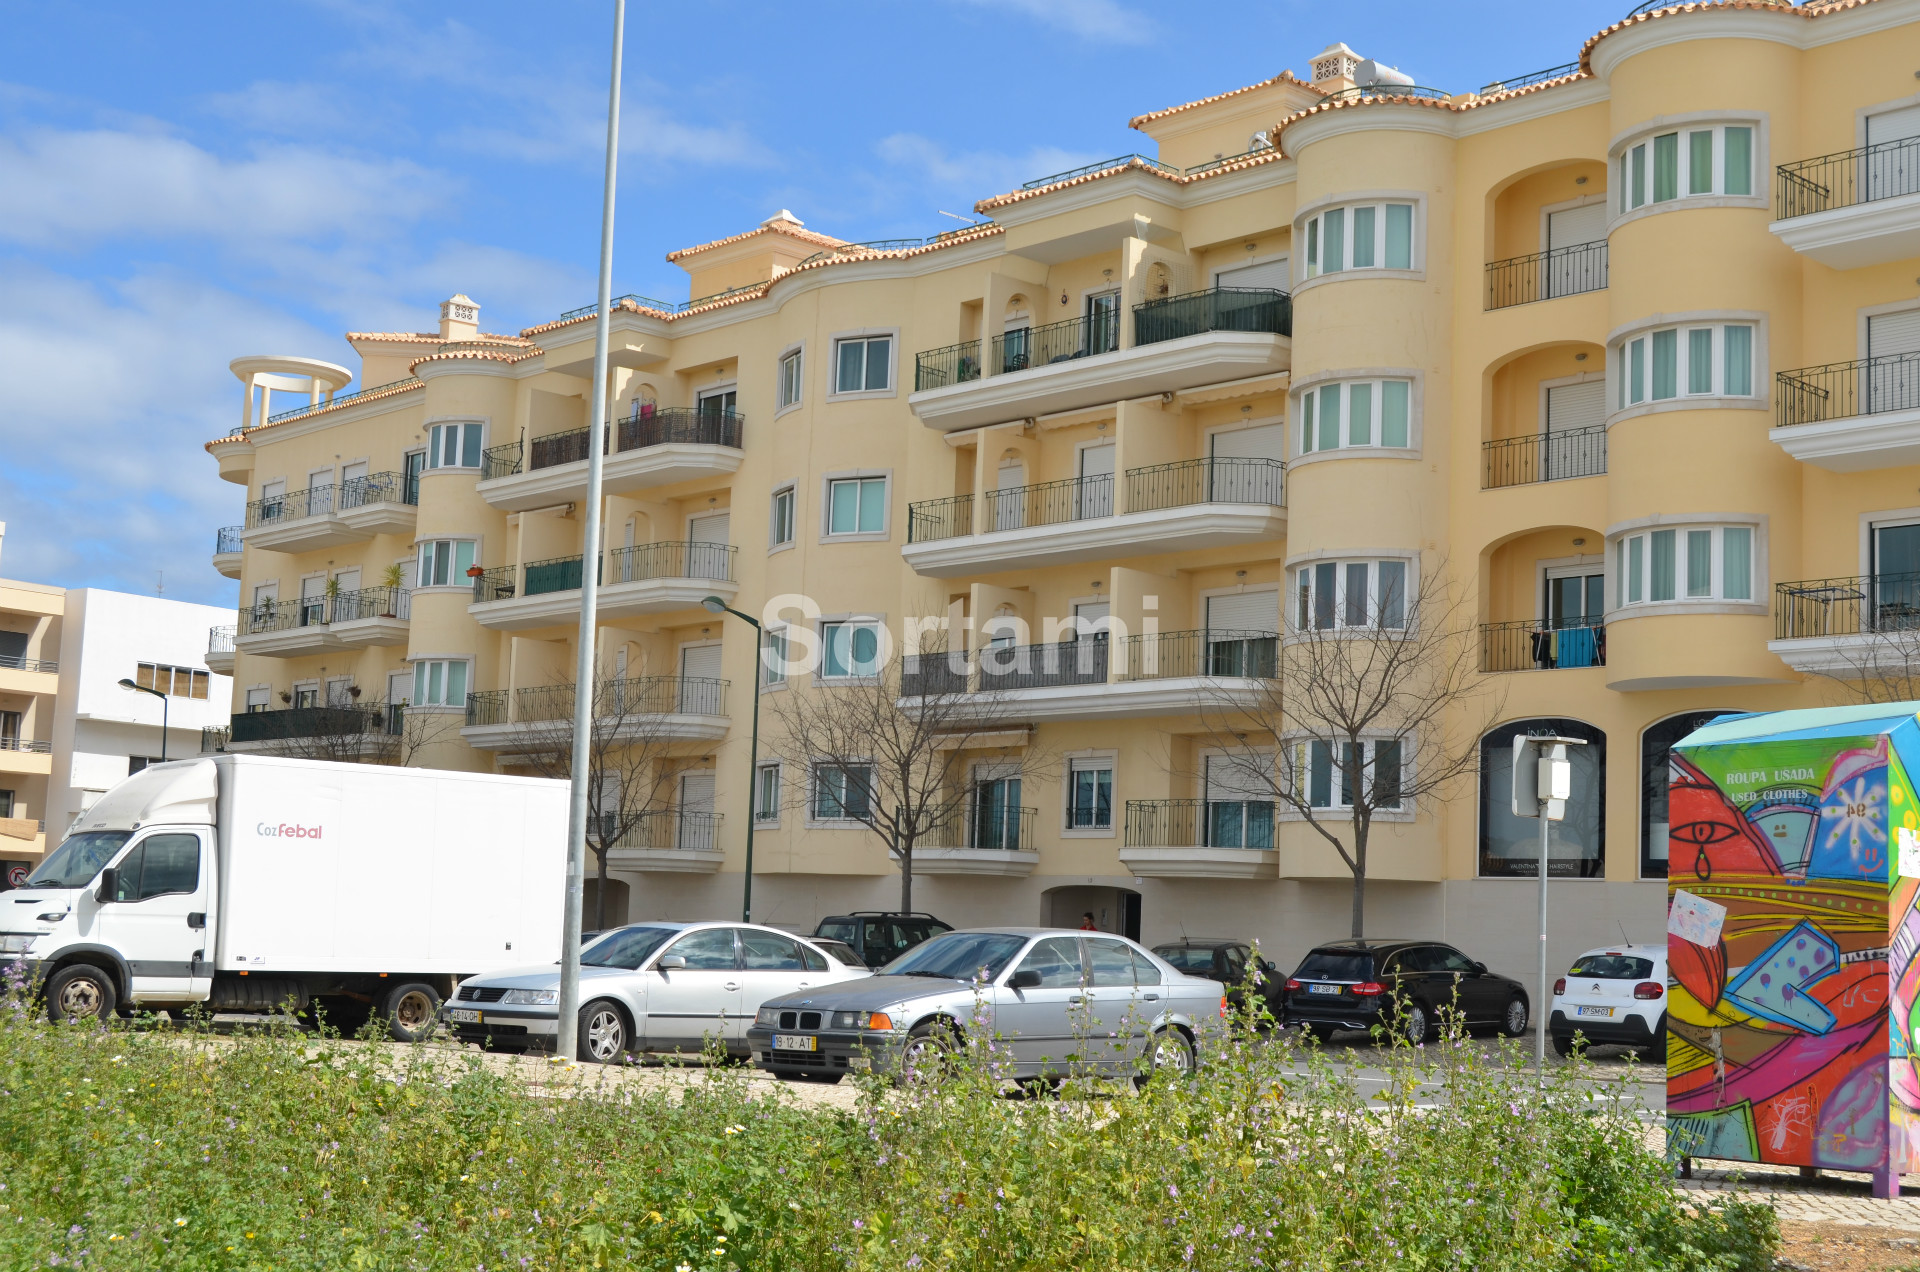 Plot  Algarve, Loule